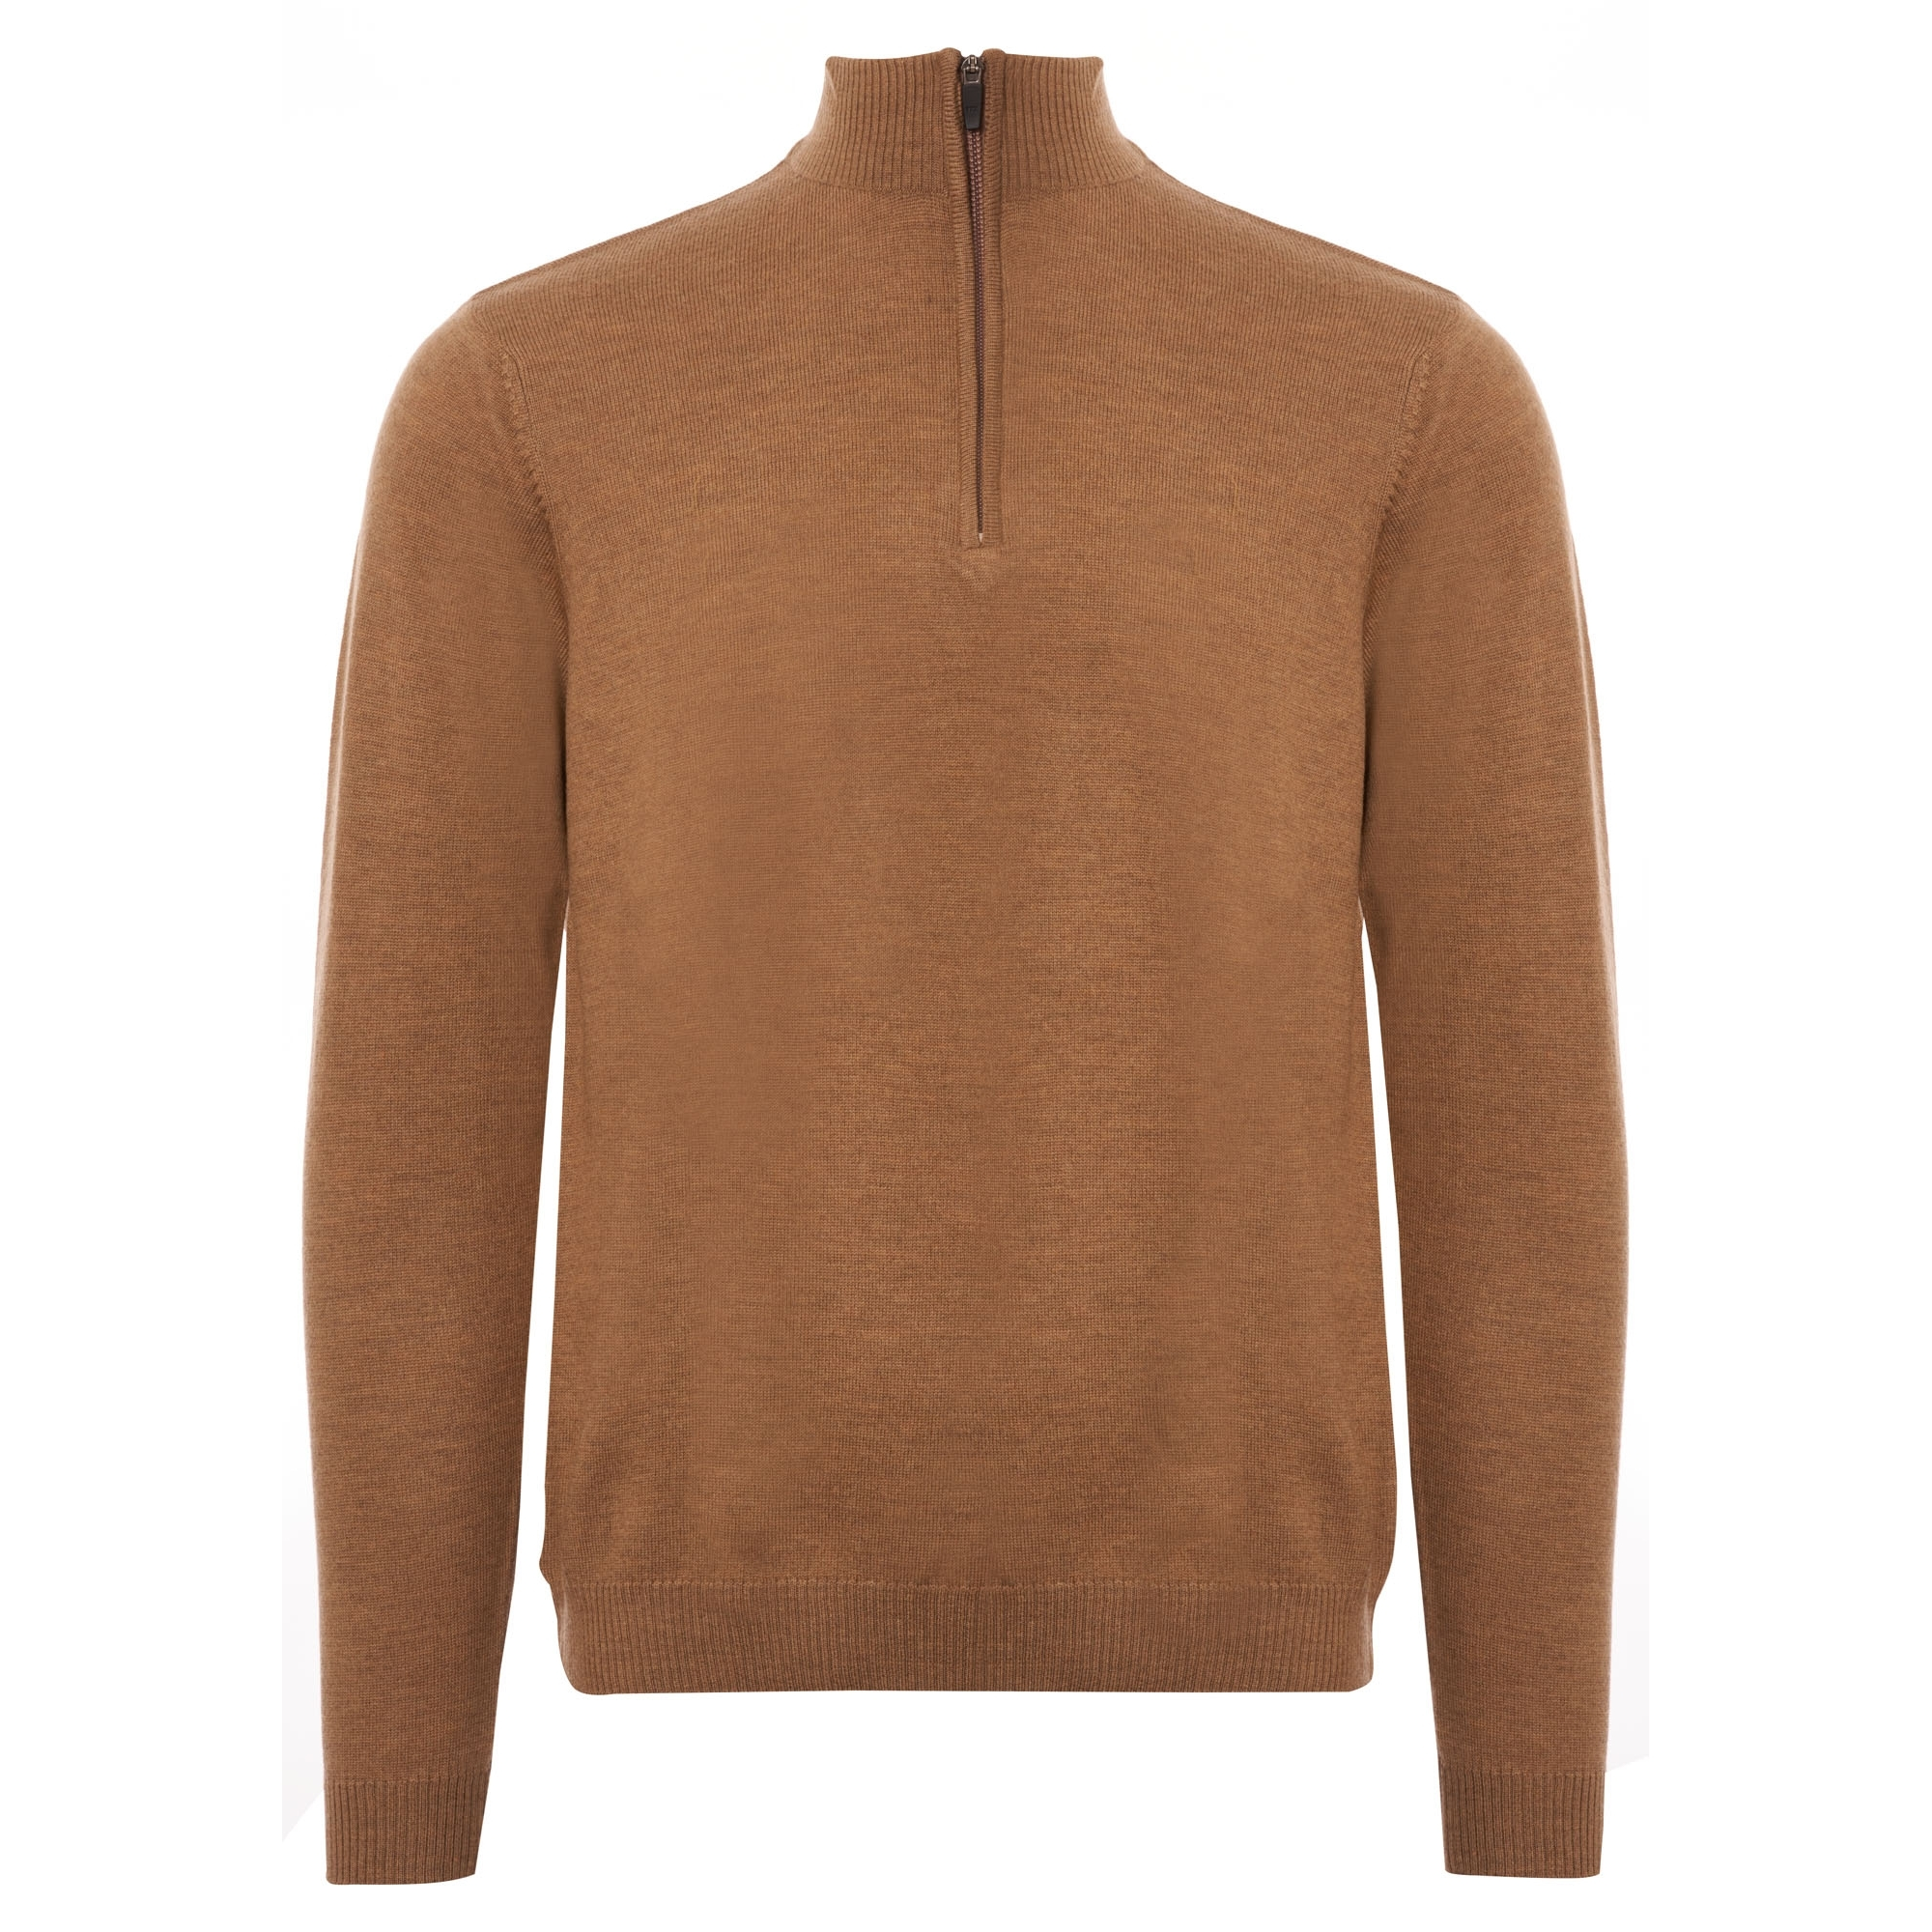 Image of 1/4 Zip Jumper - Camel